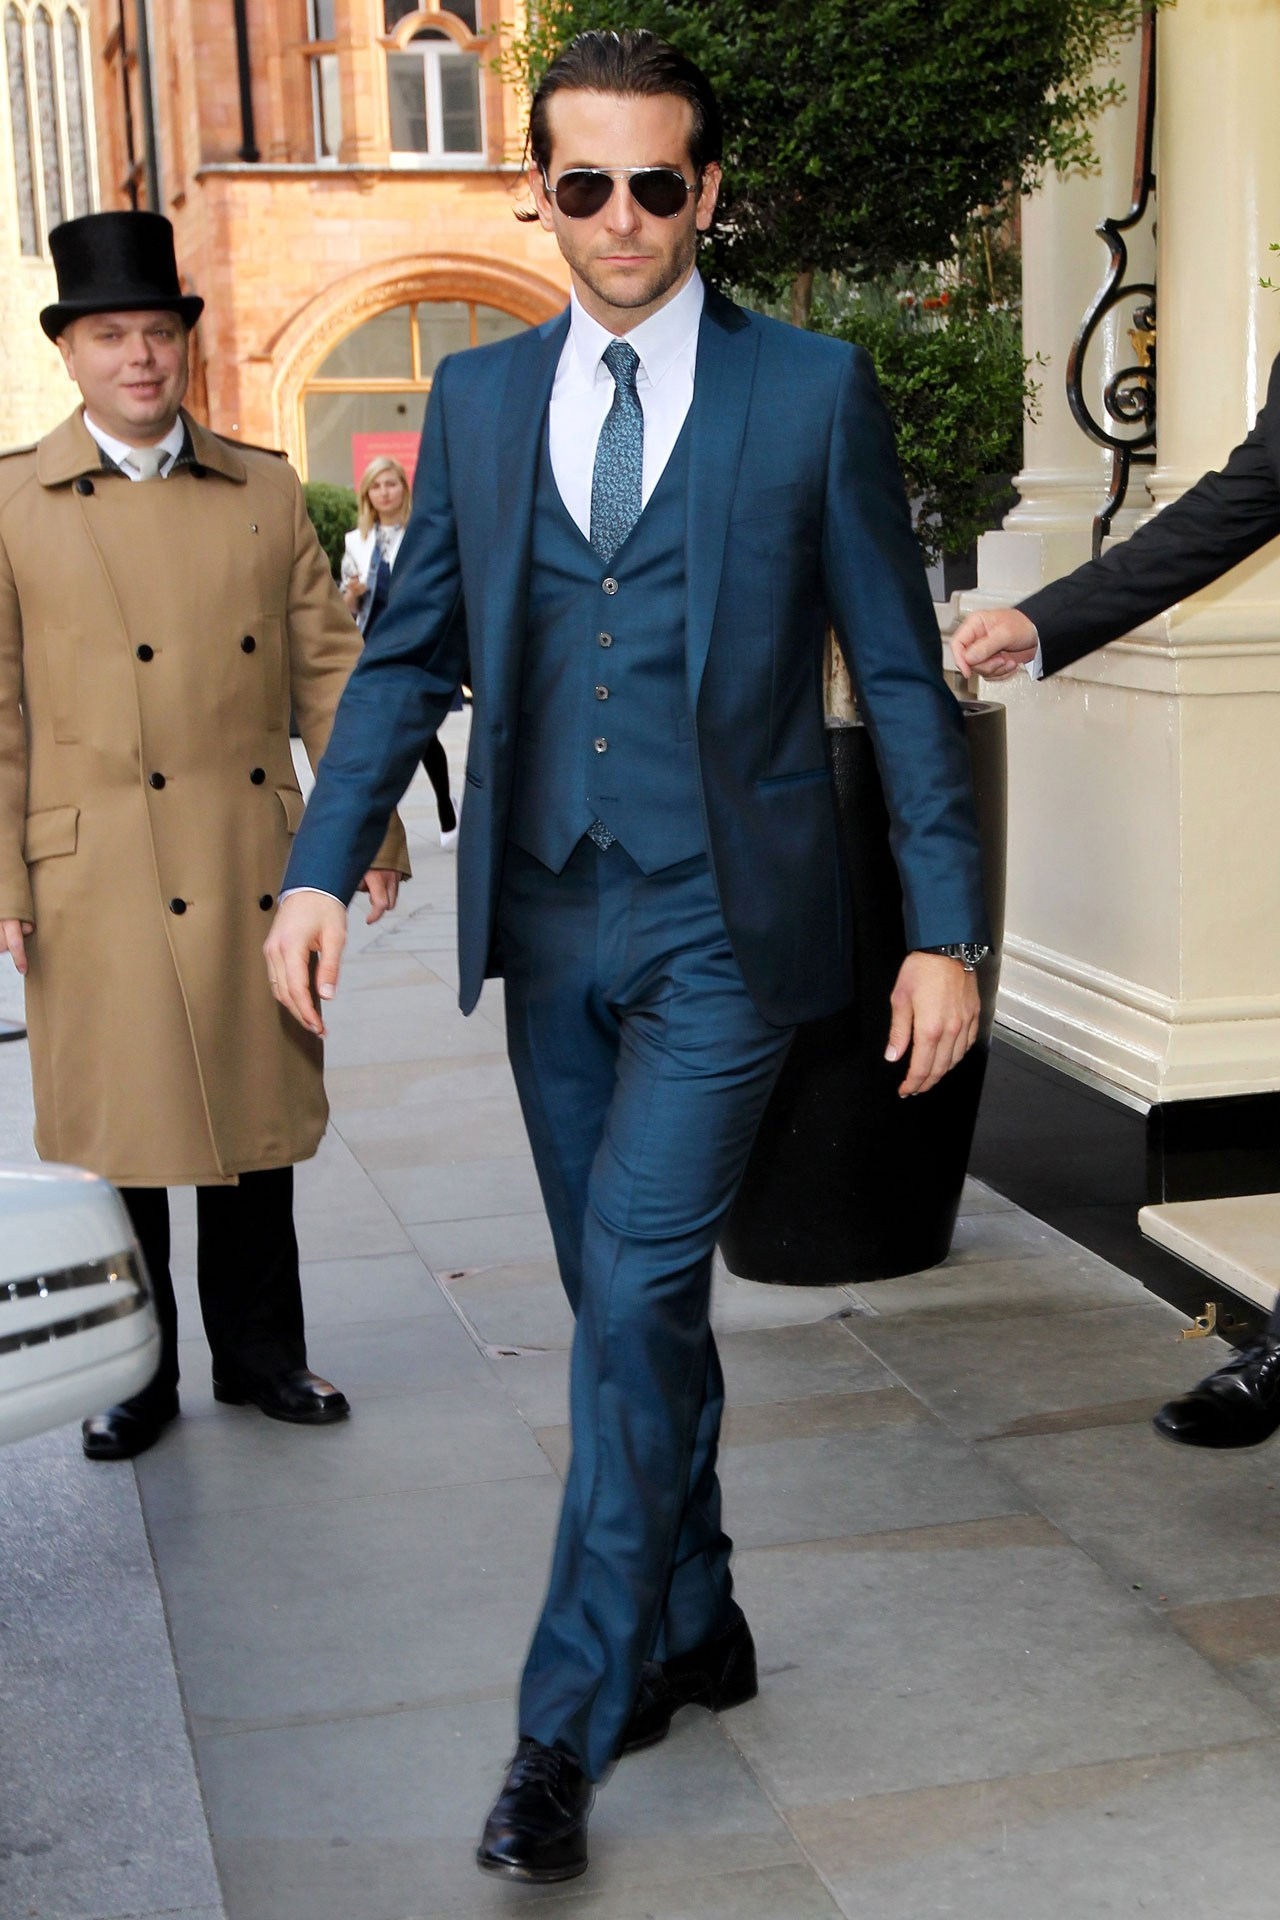 Check Out Bradley's Suit. (GQ Magazine)